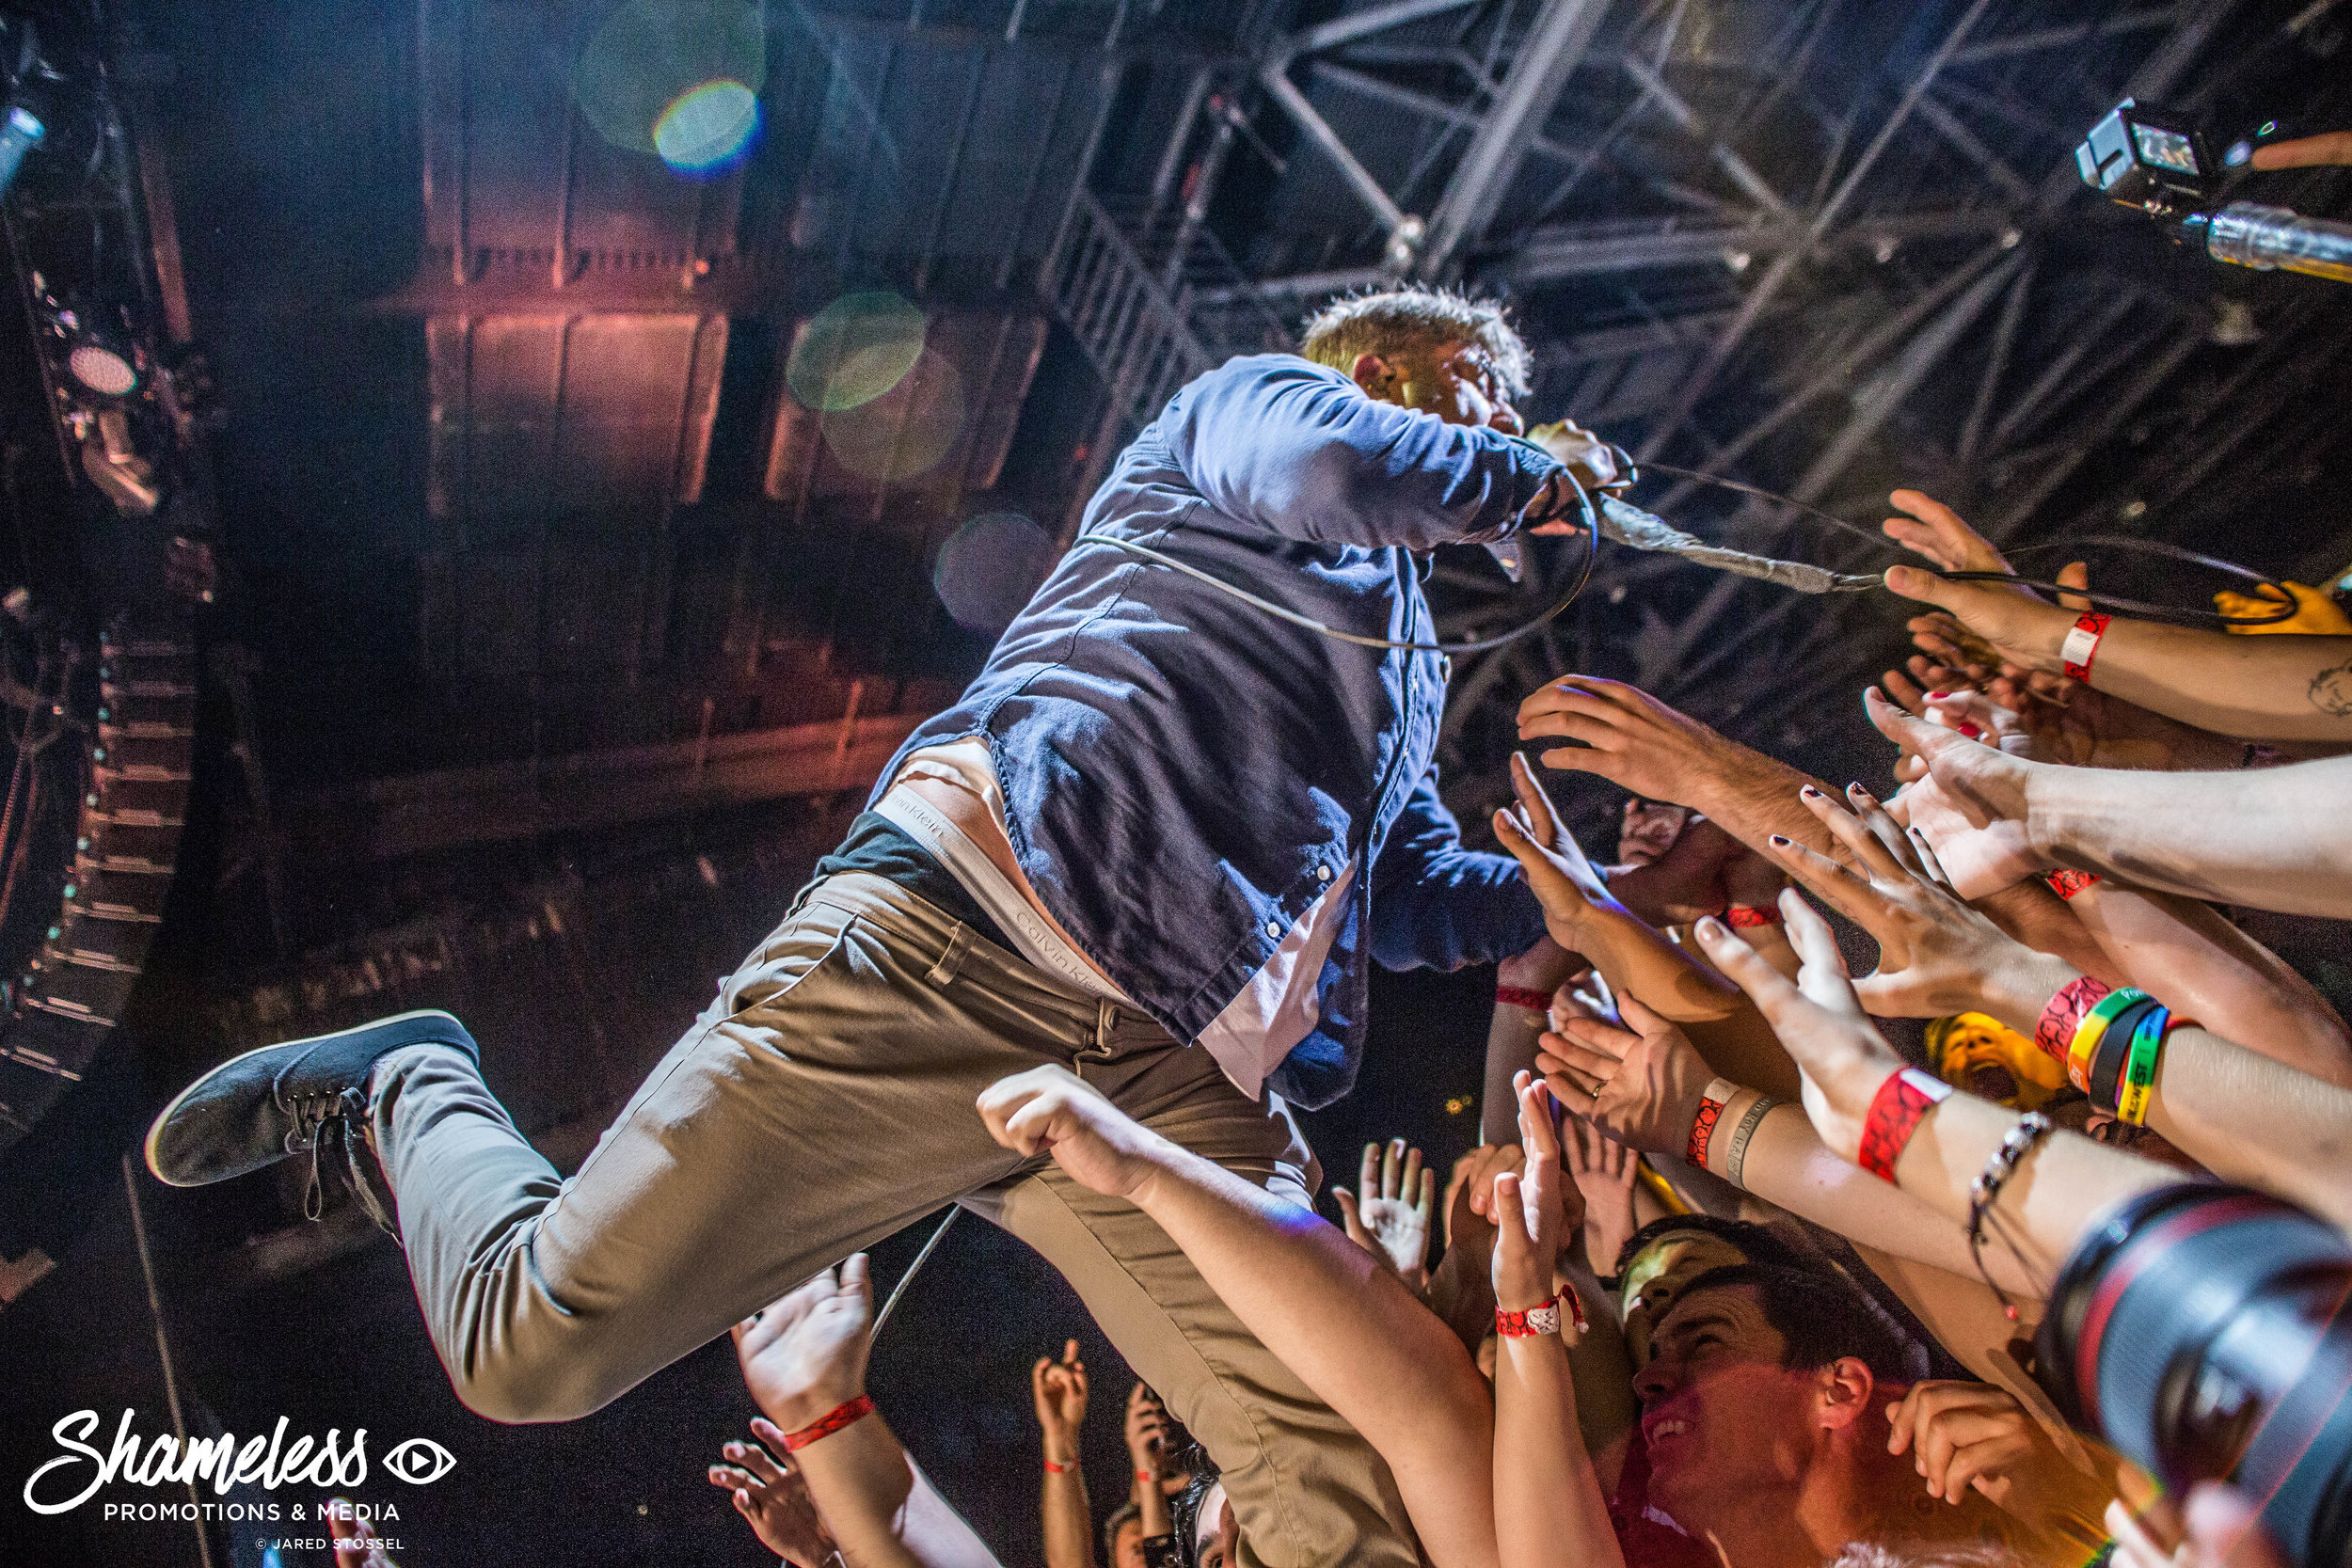 Chino Moreno of Deftones performing in Concord, CA at Concord Pavilion. July 6, 2017. Photo: Jared Stossel